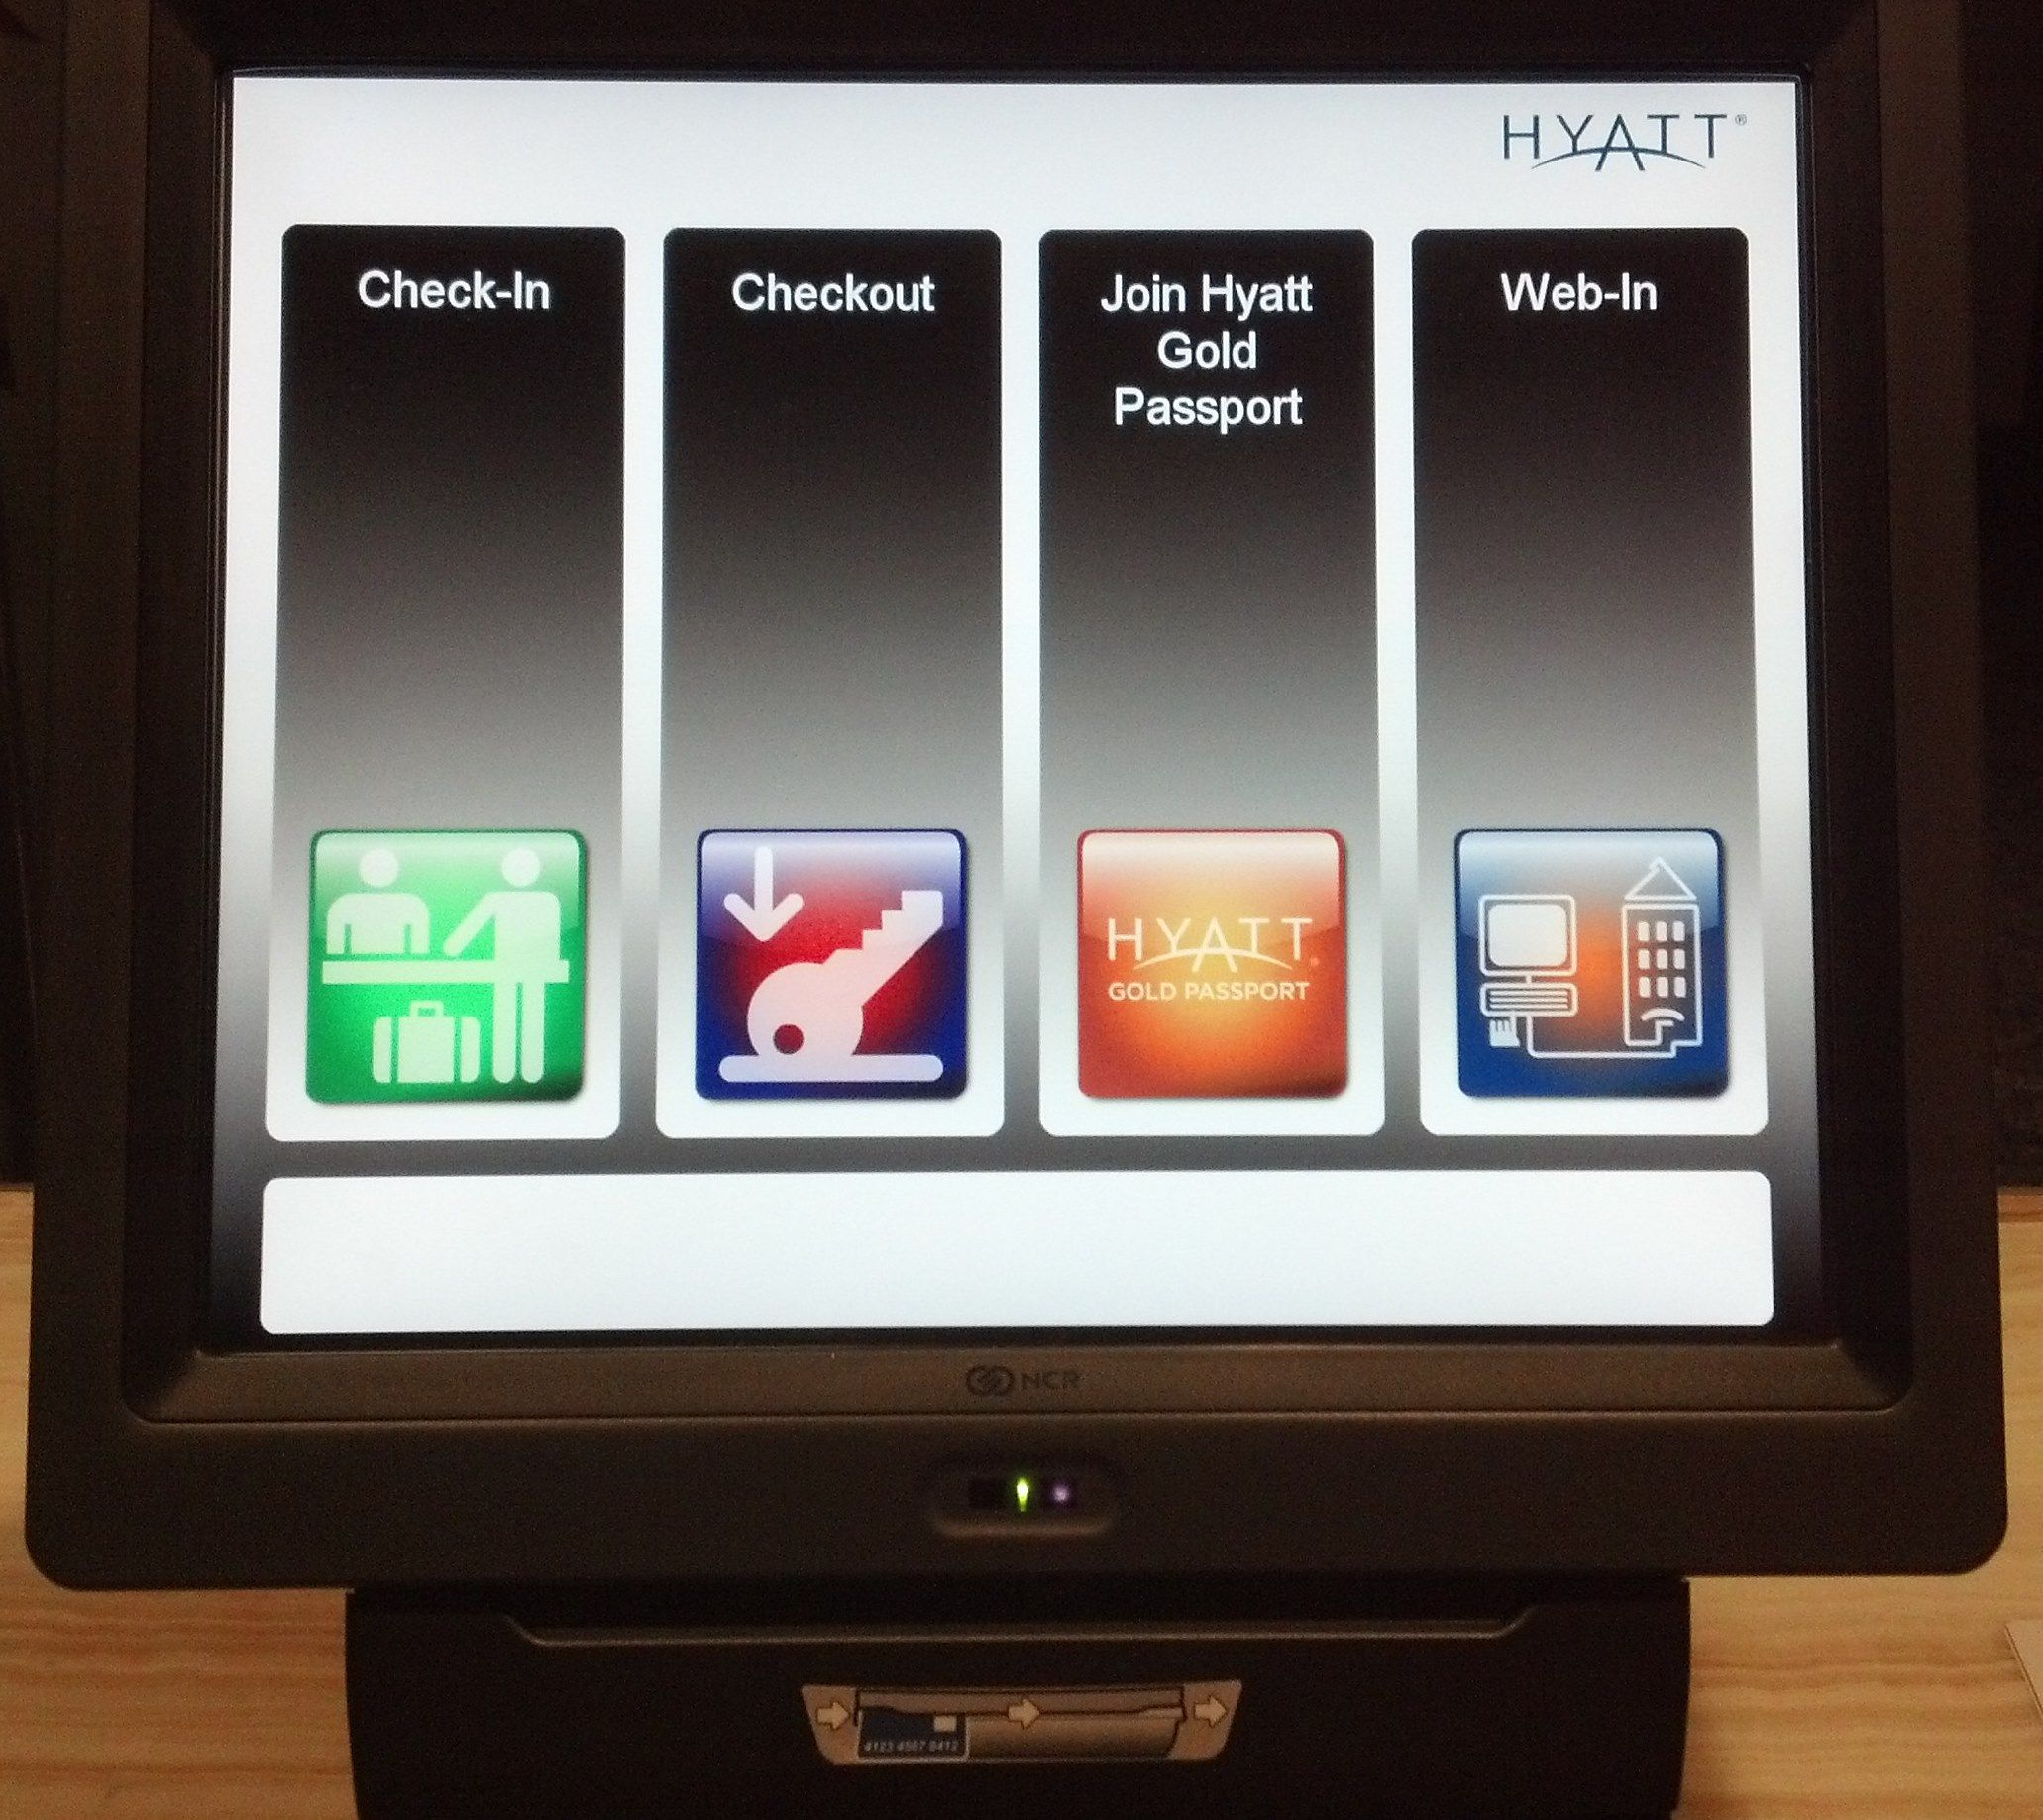 Interesting self-service kiosk in the Hyatt Regency in ...